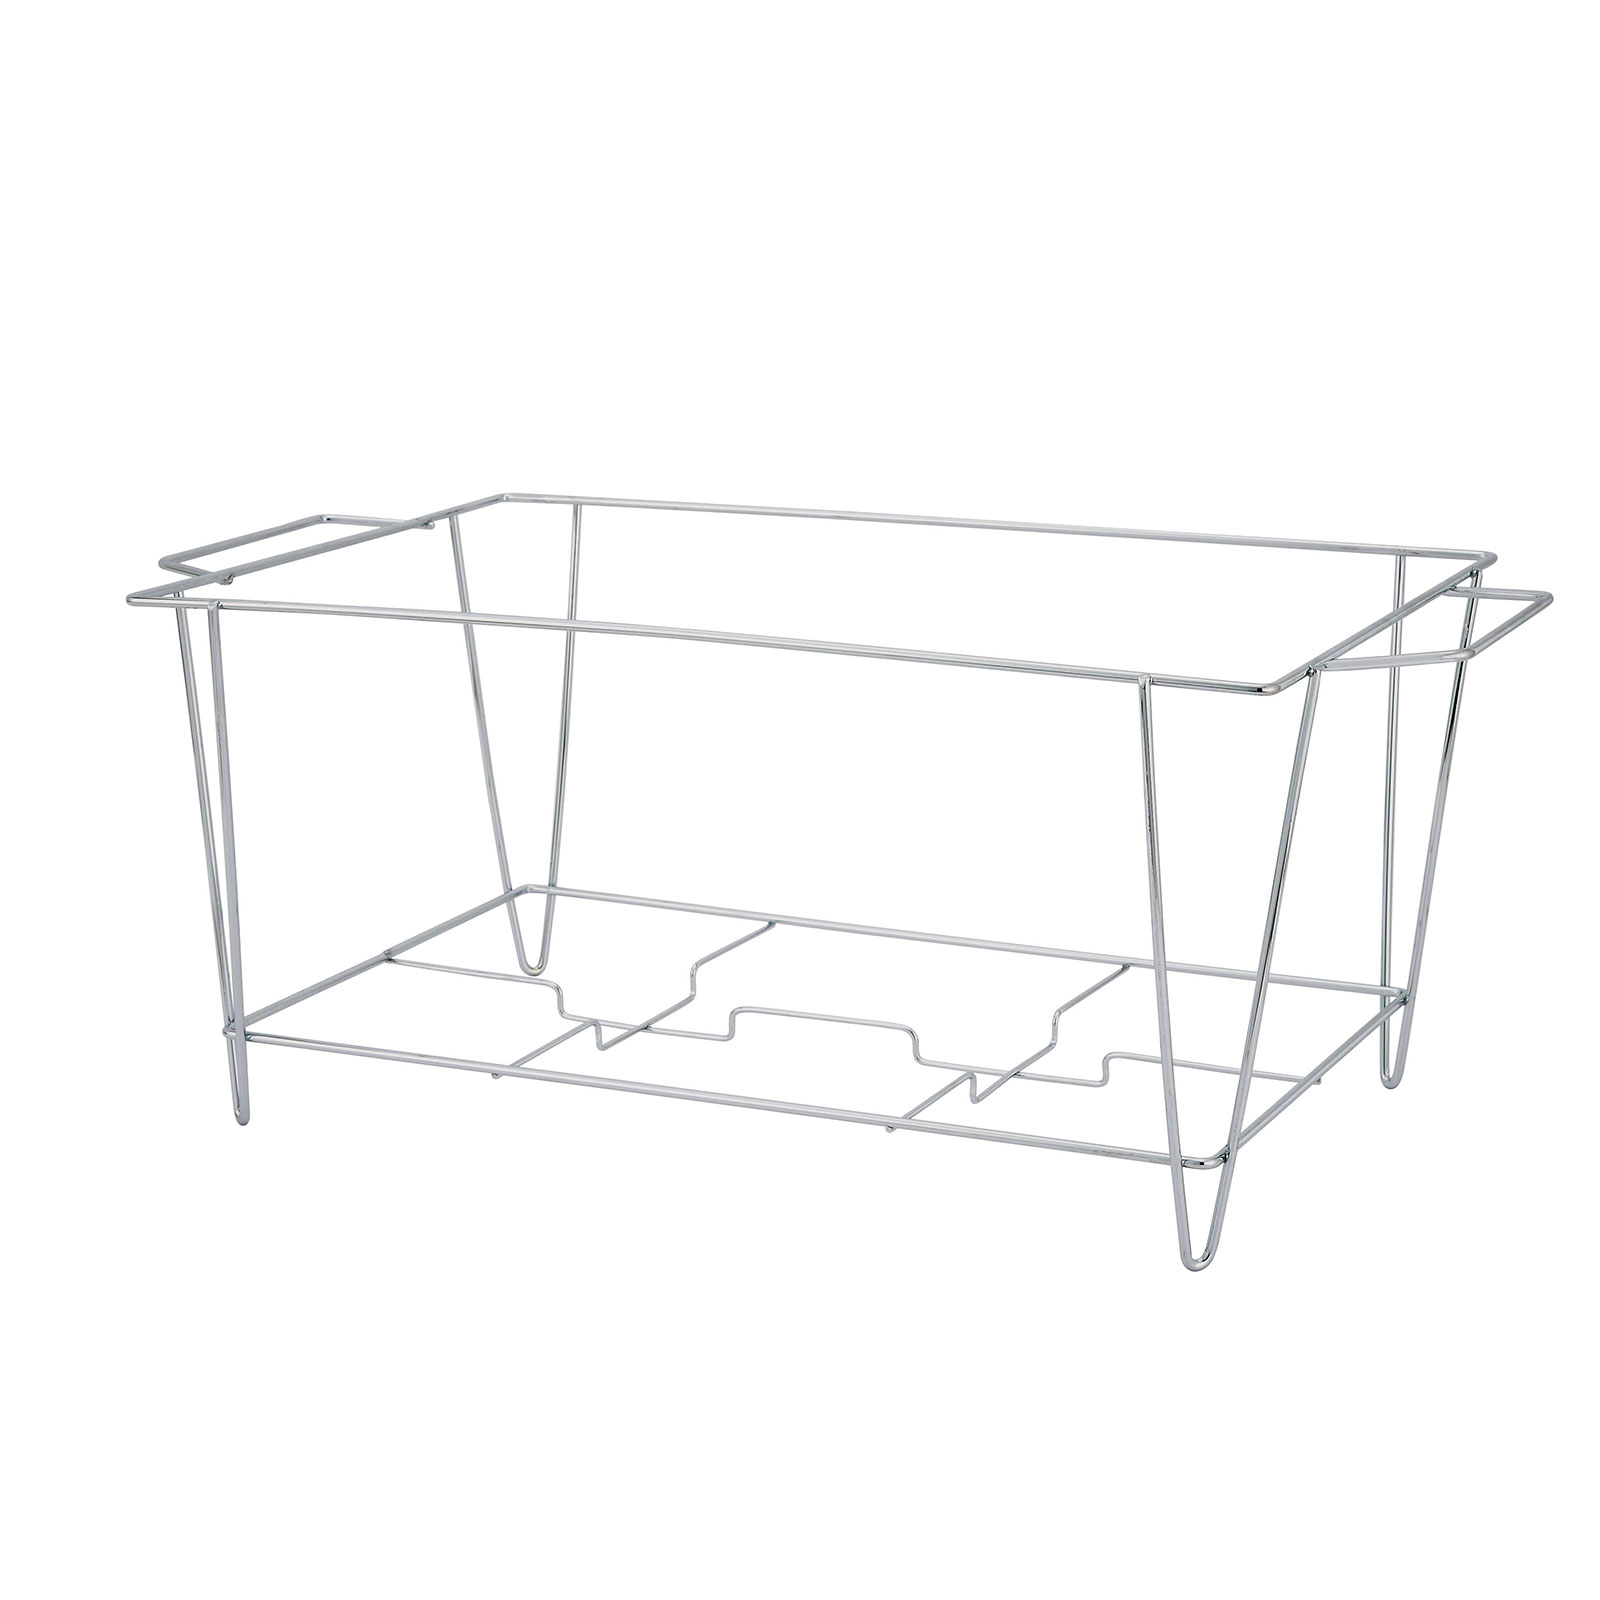 2850-20 Winco C-3F chafing dish frame / stand